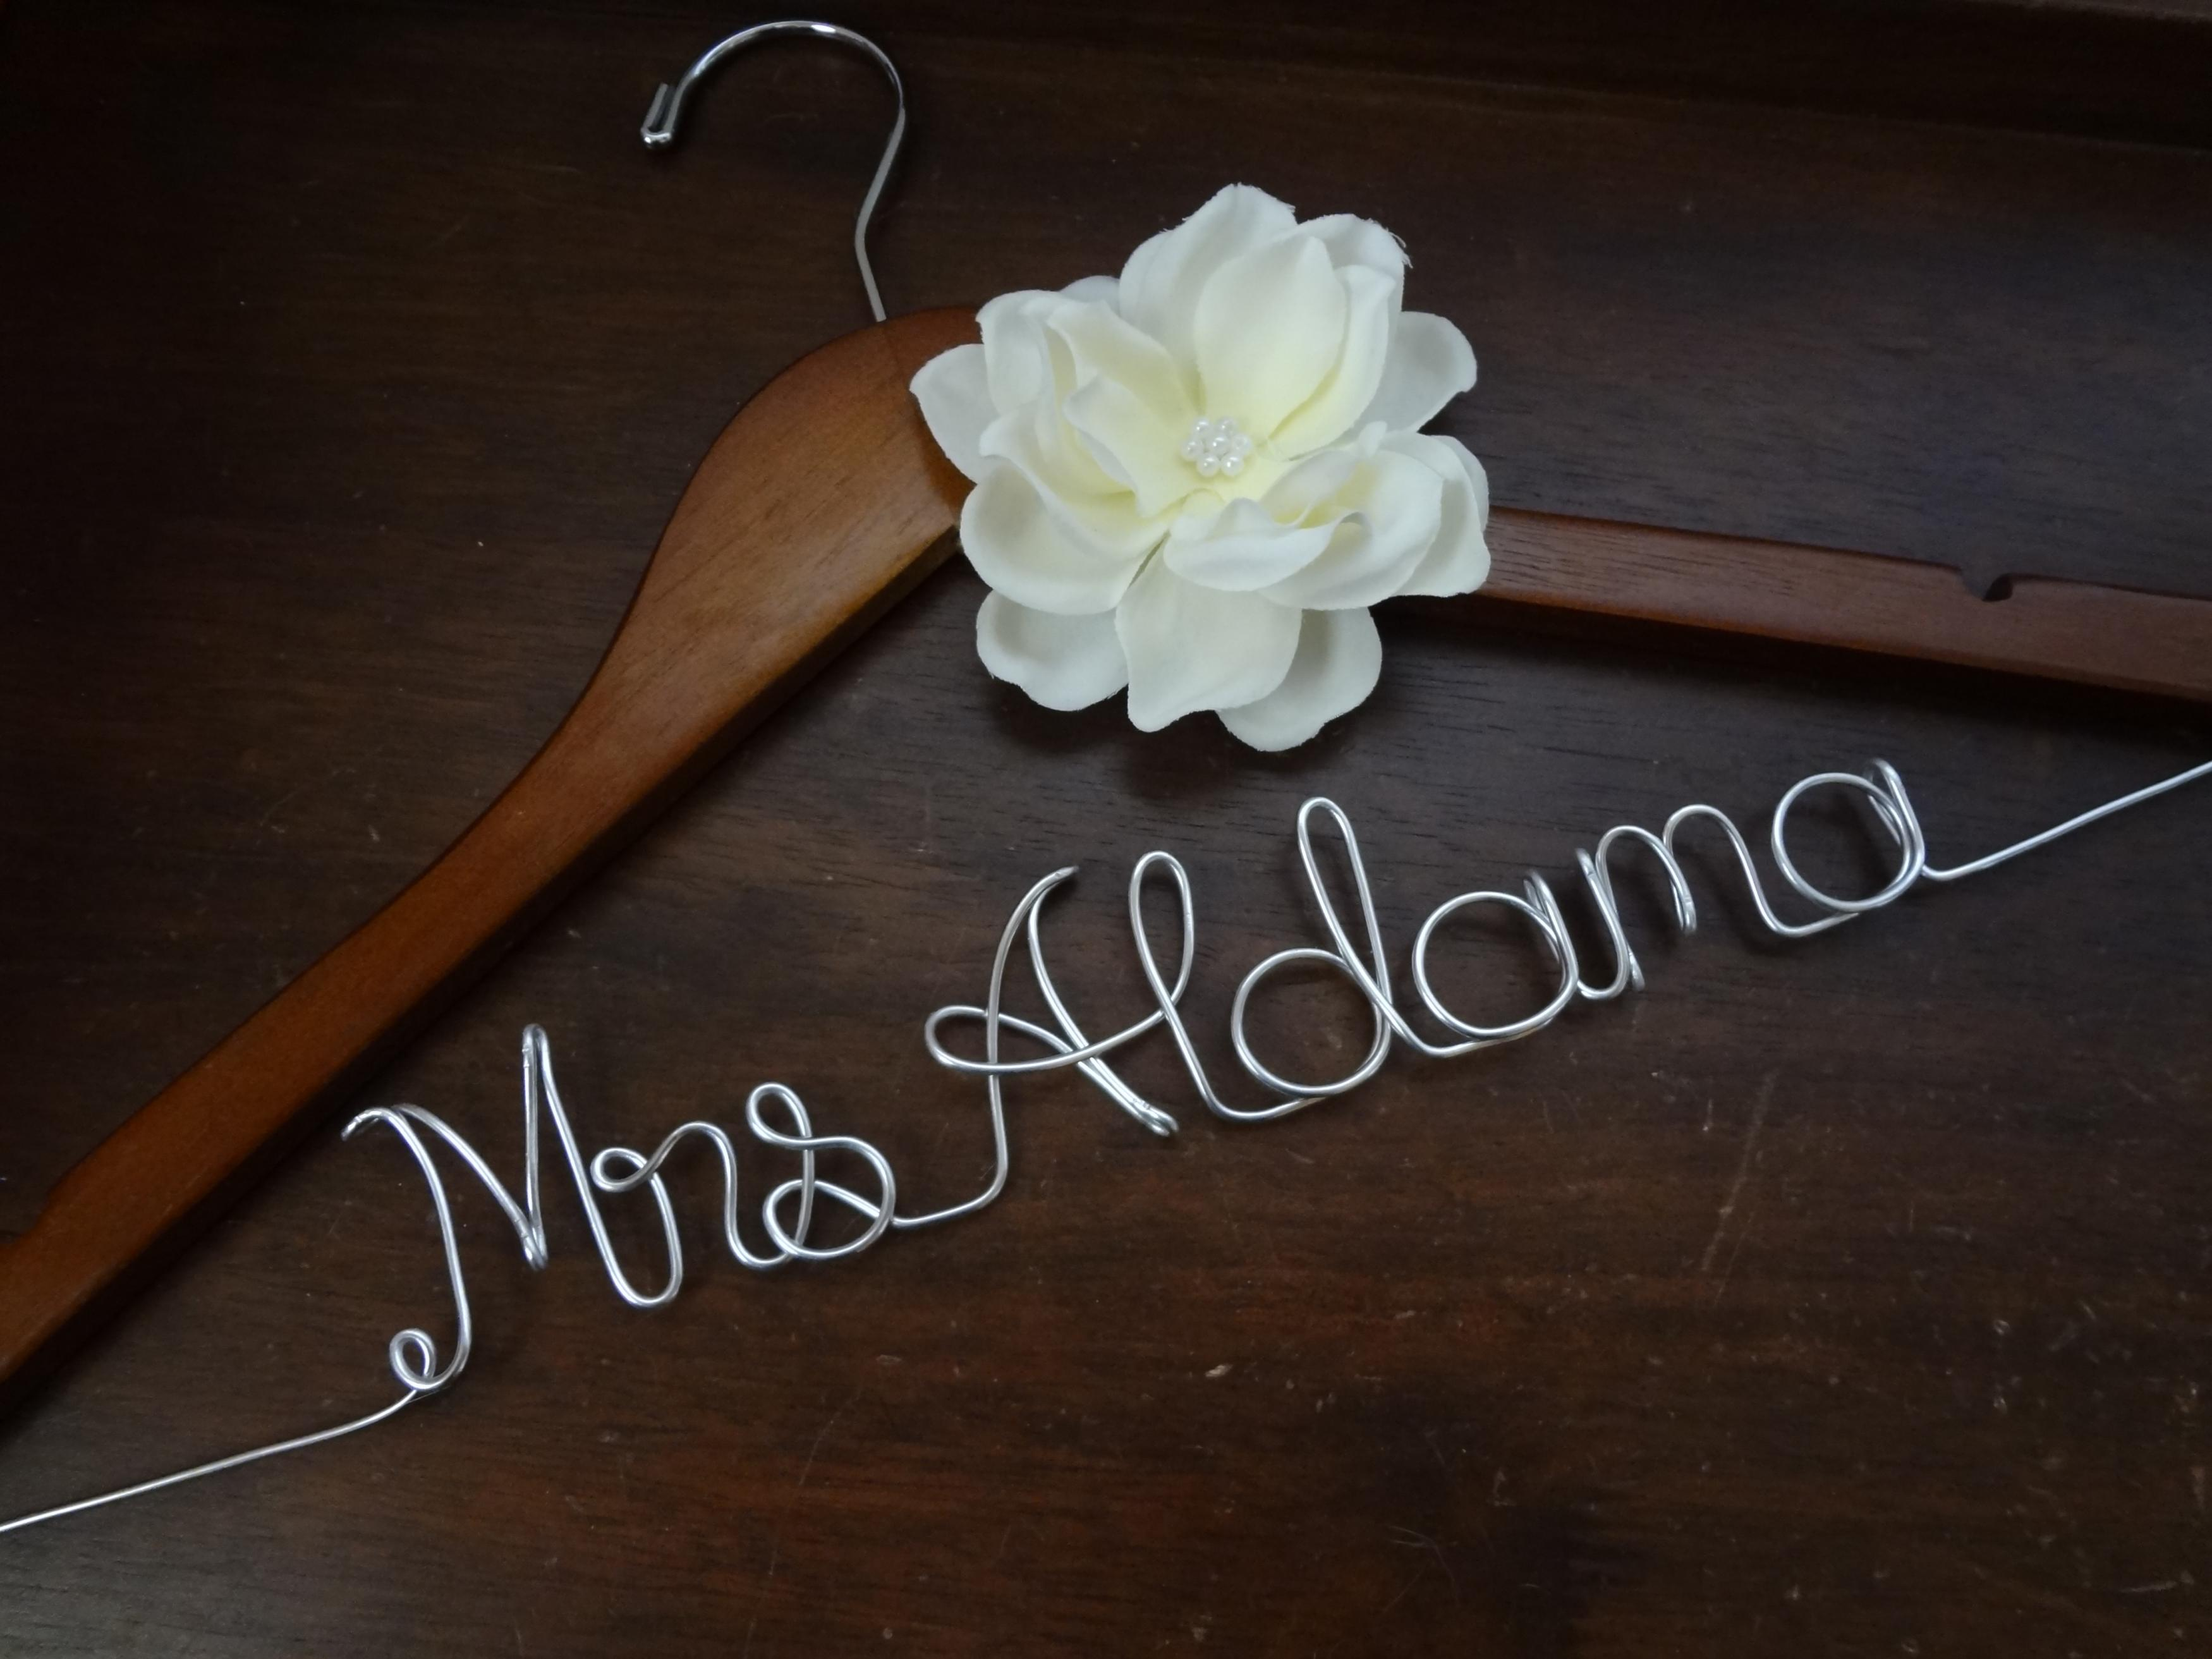 personalized wedding dress hanger with ivory fabric flower wedding hangers Personalized Wedding Dress Hanger with Ivory Fabric Flower